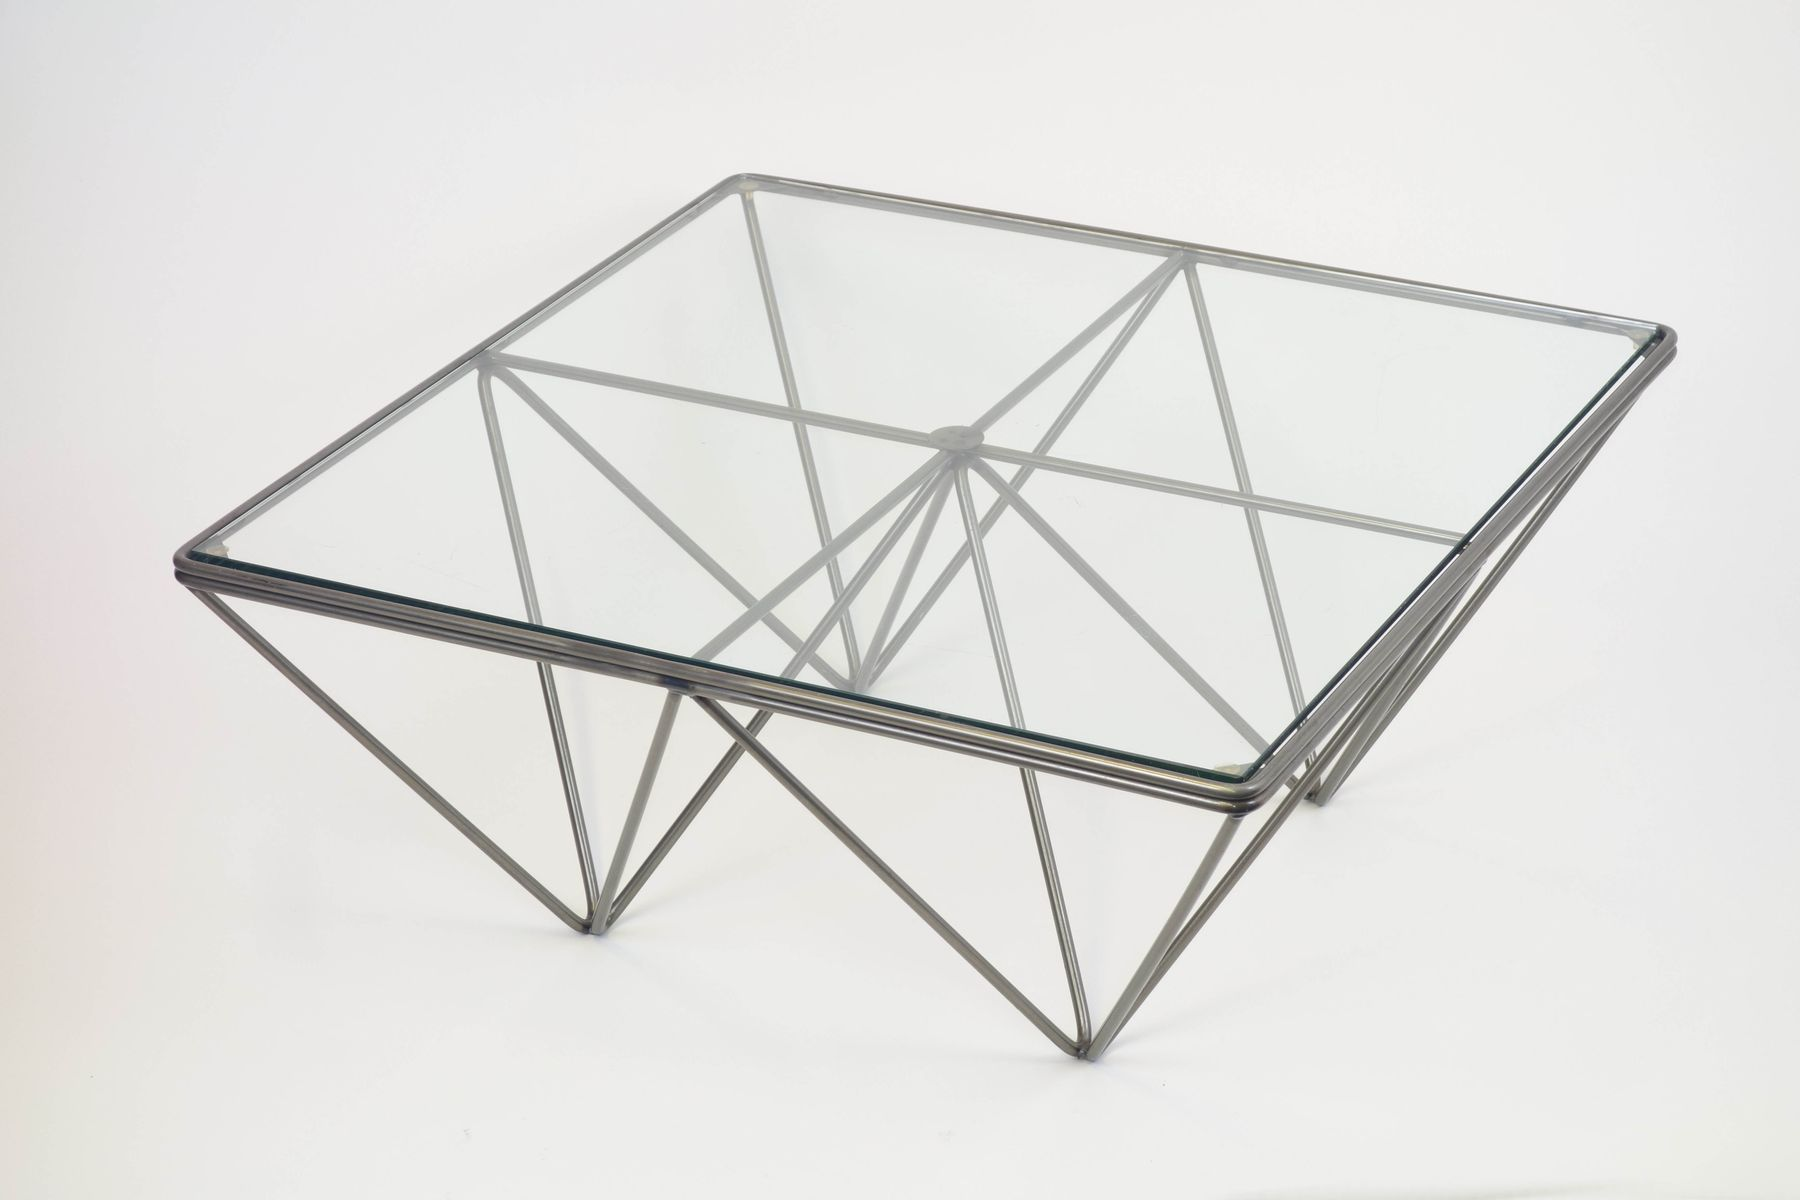 Vintage Geometric Italian Coffee Table 1980s for sale at Pamono